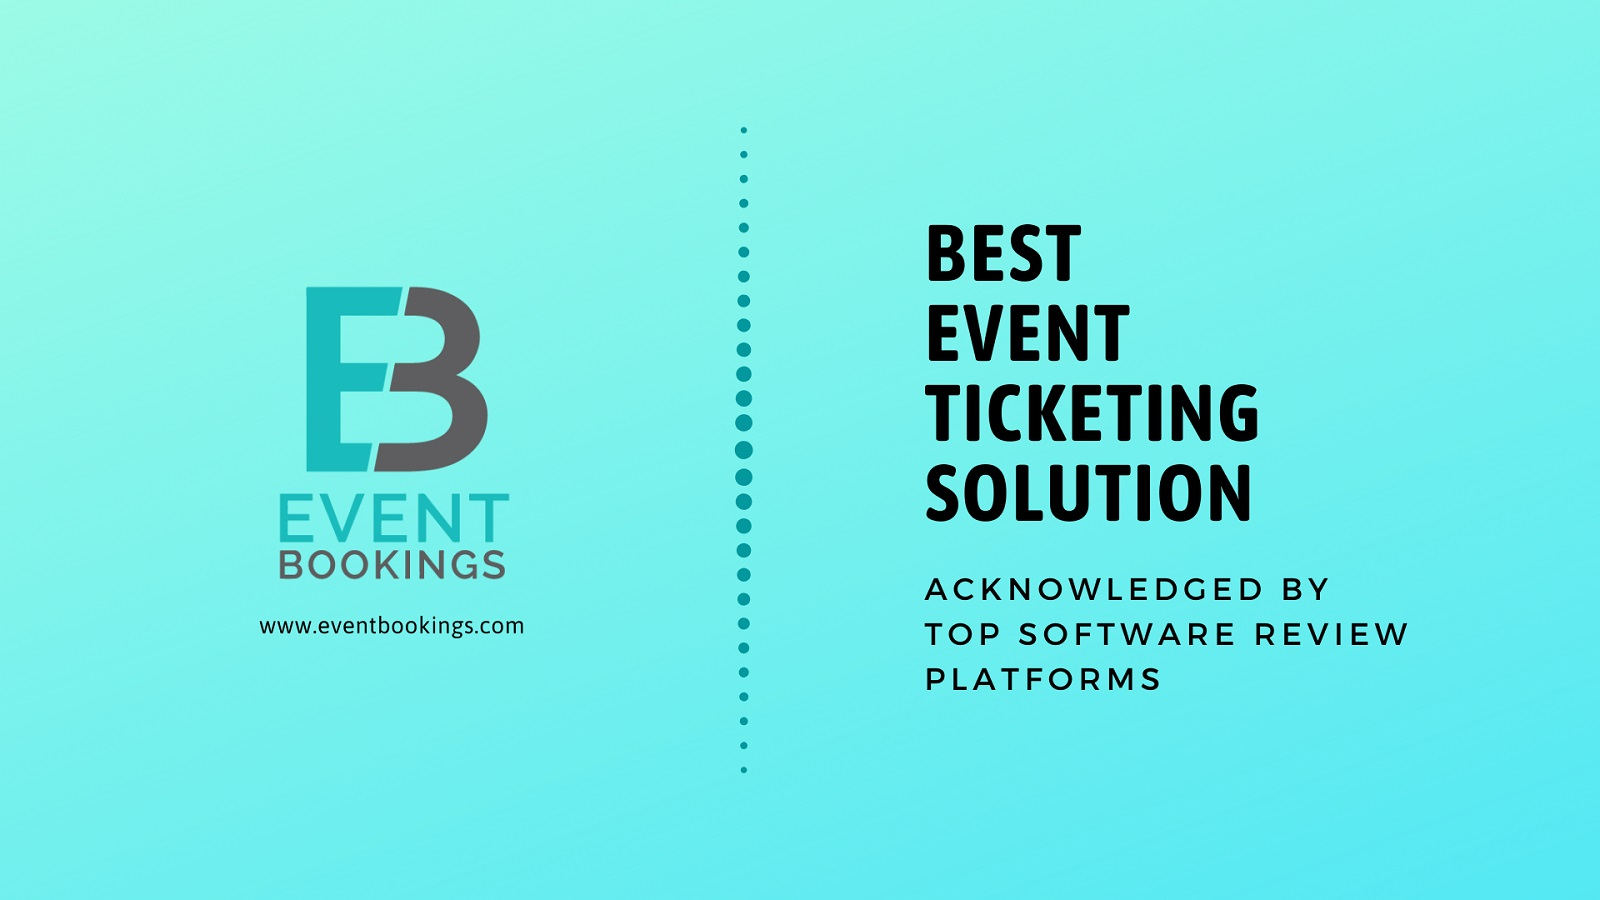 EventBookings acknowledged as best event ticketing solution